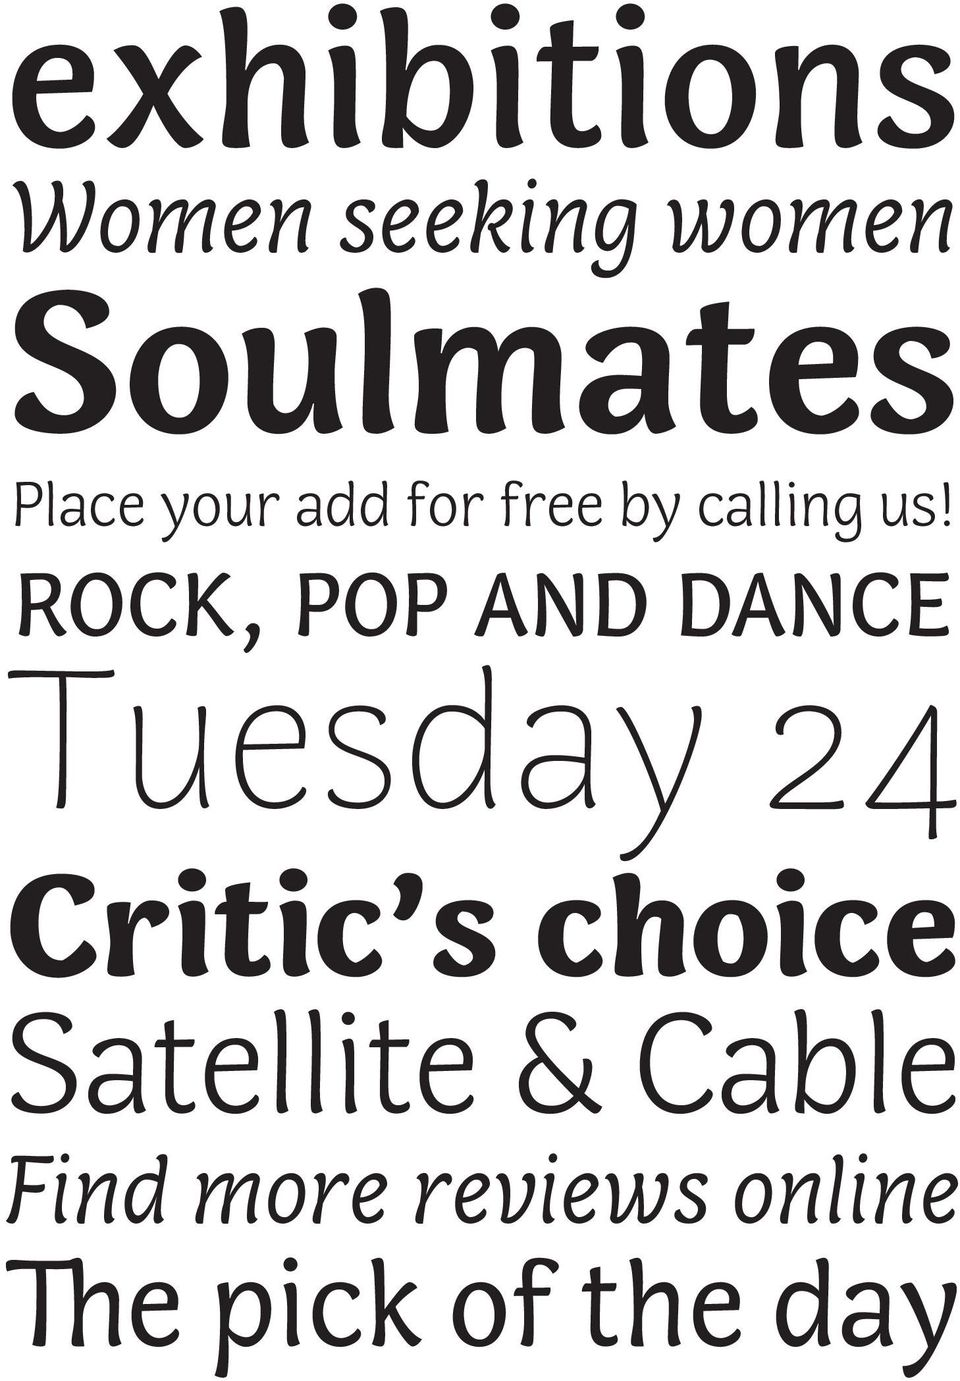 ROCK, POP AND DANCE Tuesday 24 Critic s choice